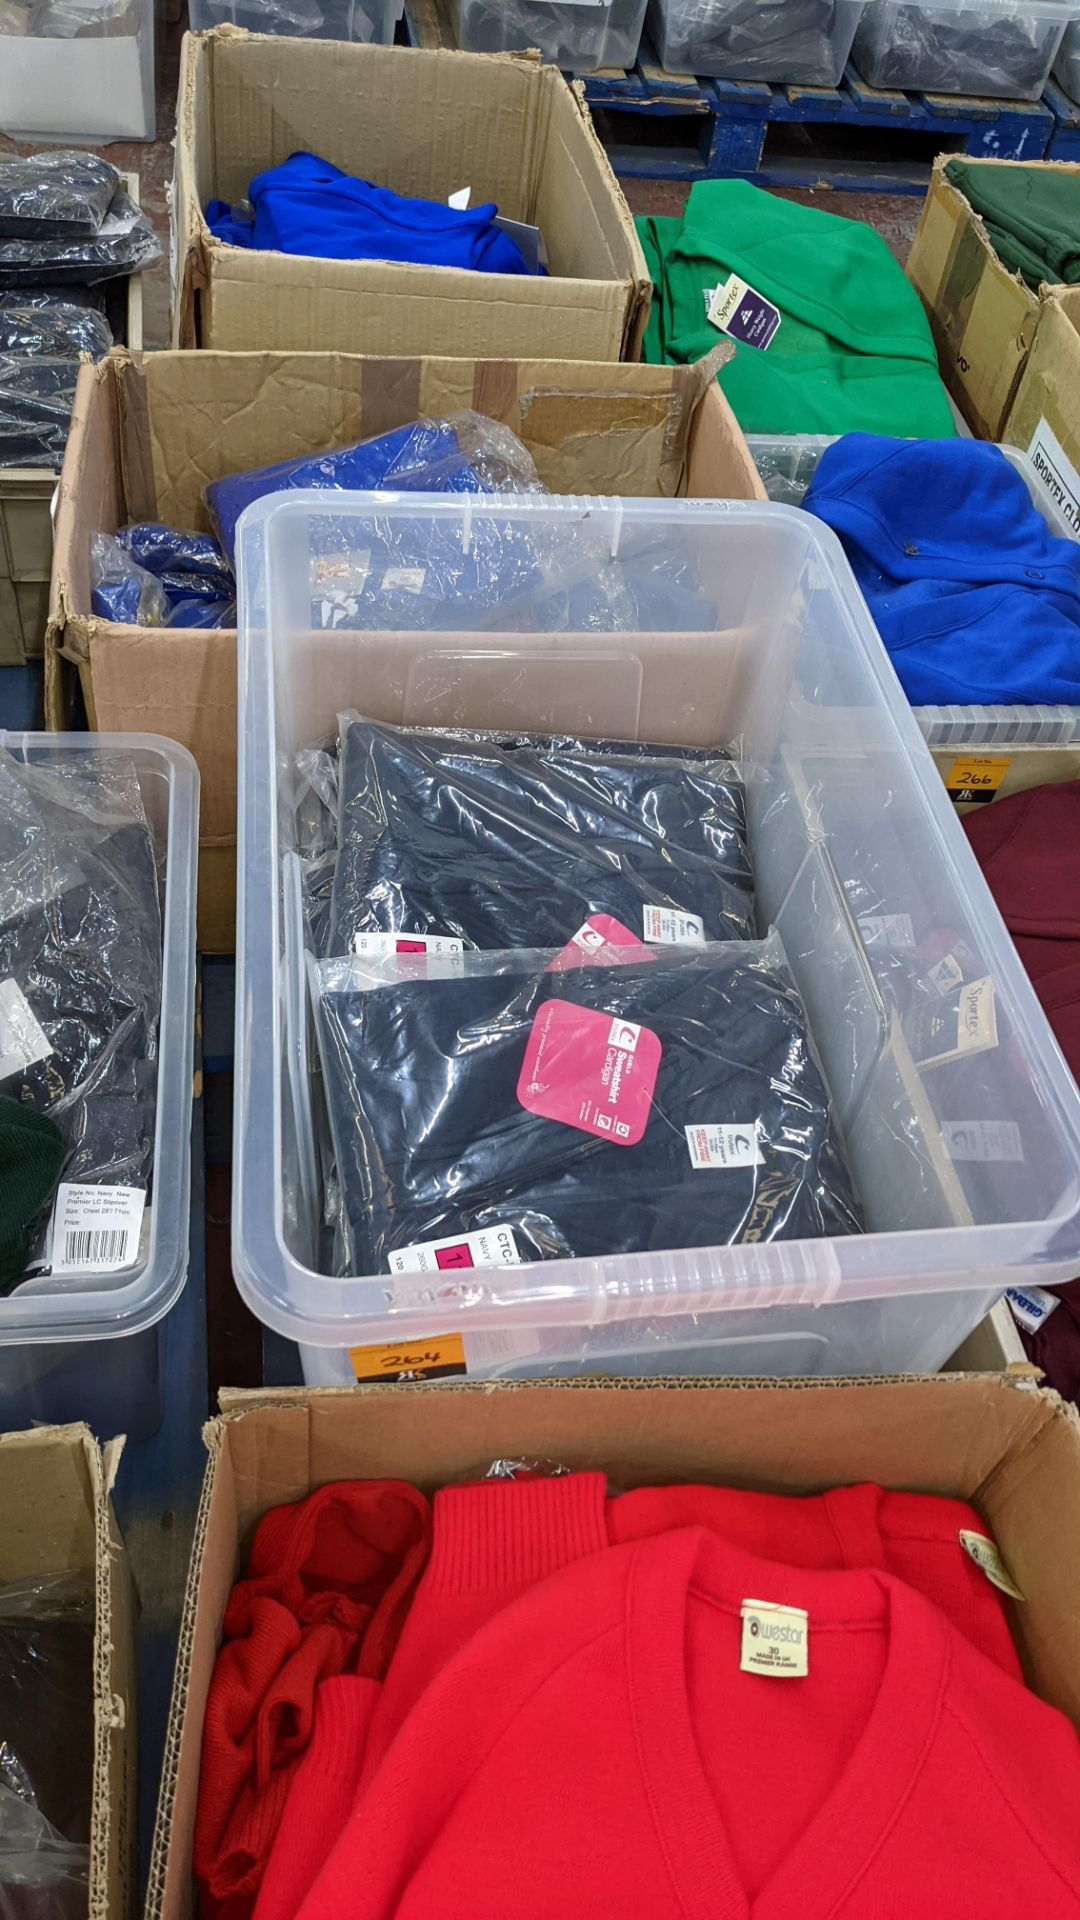 Approx 11 off Trutex children's navy button up sweatshirts/cardigans - the contents of 1 crate. NB - Image 2 of 5